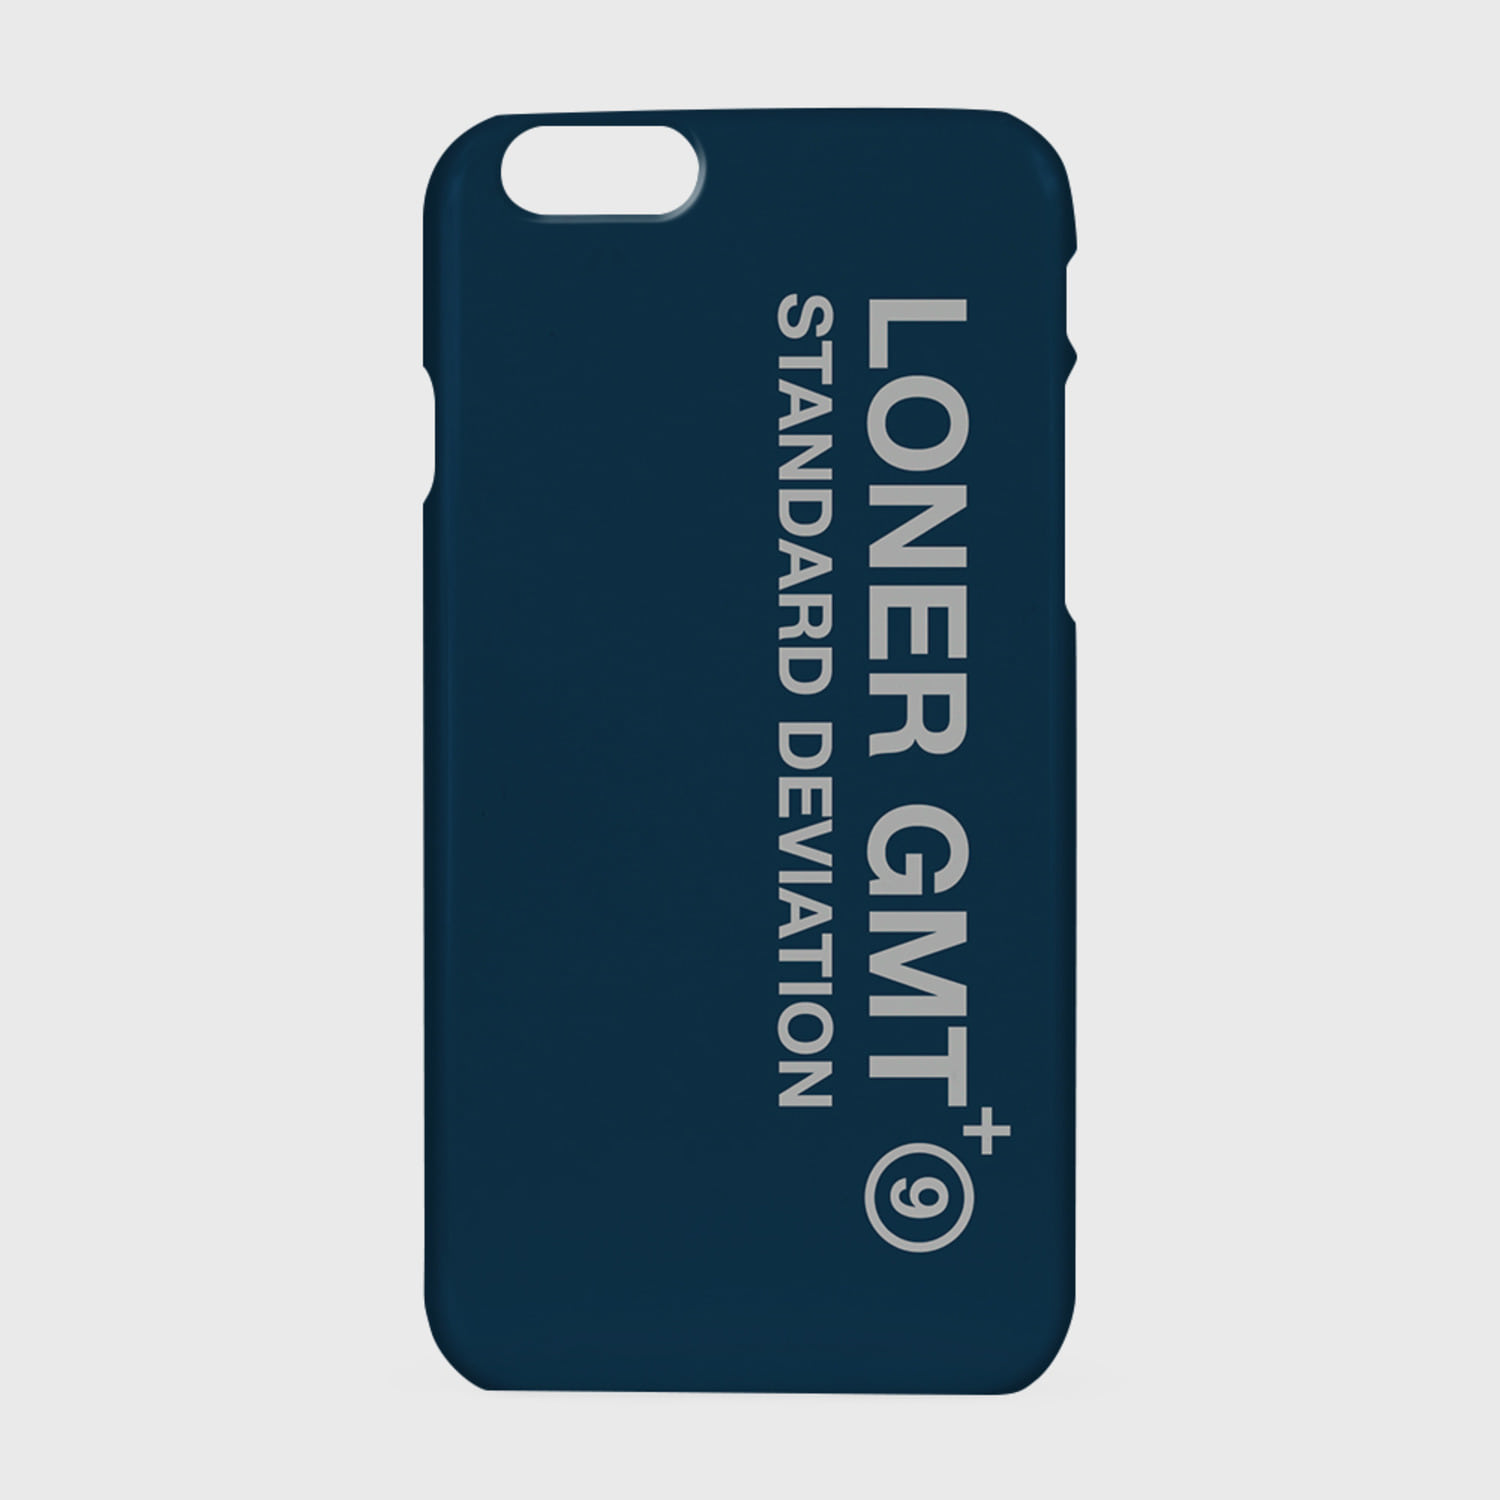 [L]Column gmt case-navy(hard)(기간한정 09.11 - 09.17)